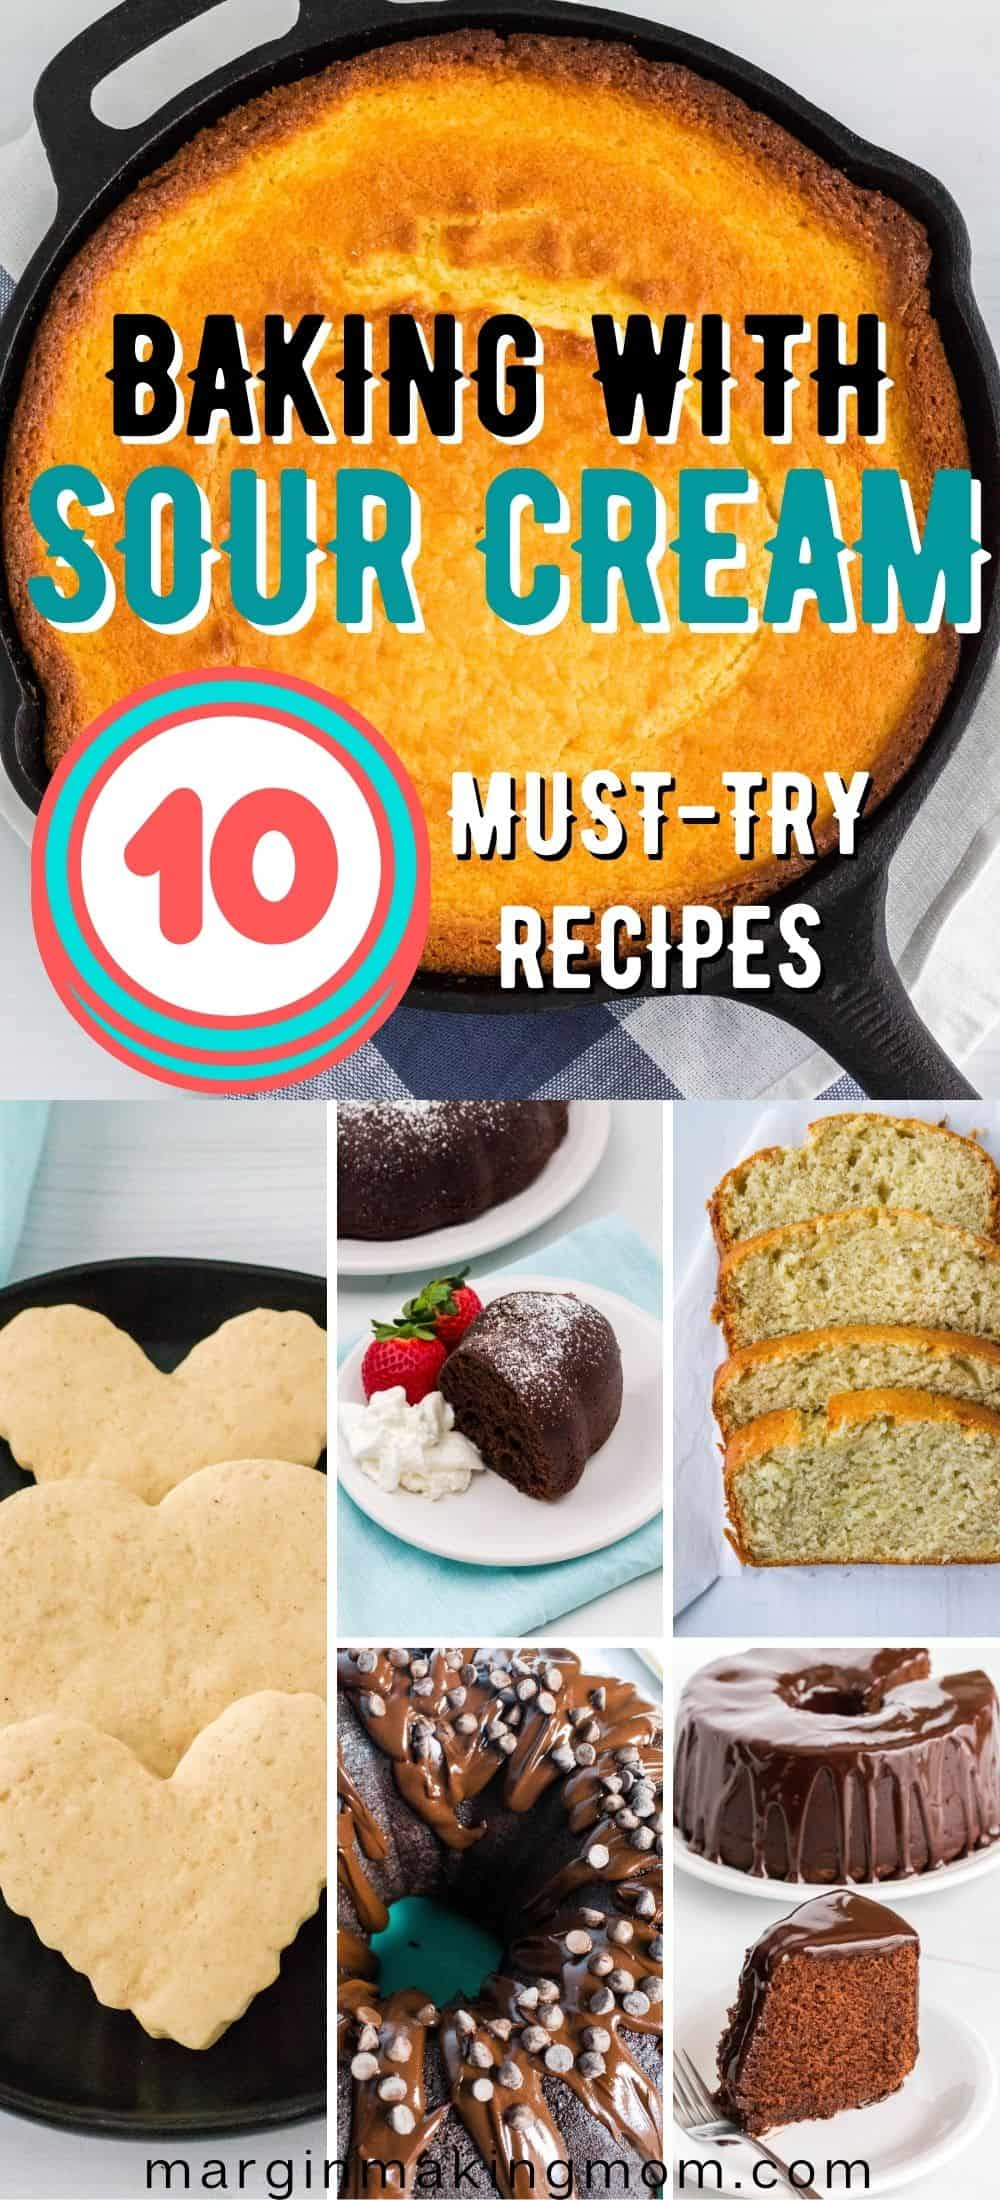 collage image with baked goods that use sour cream